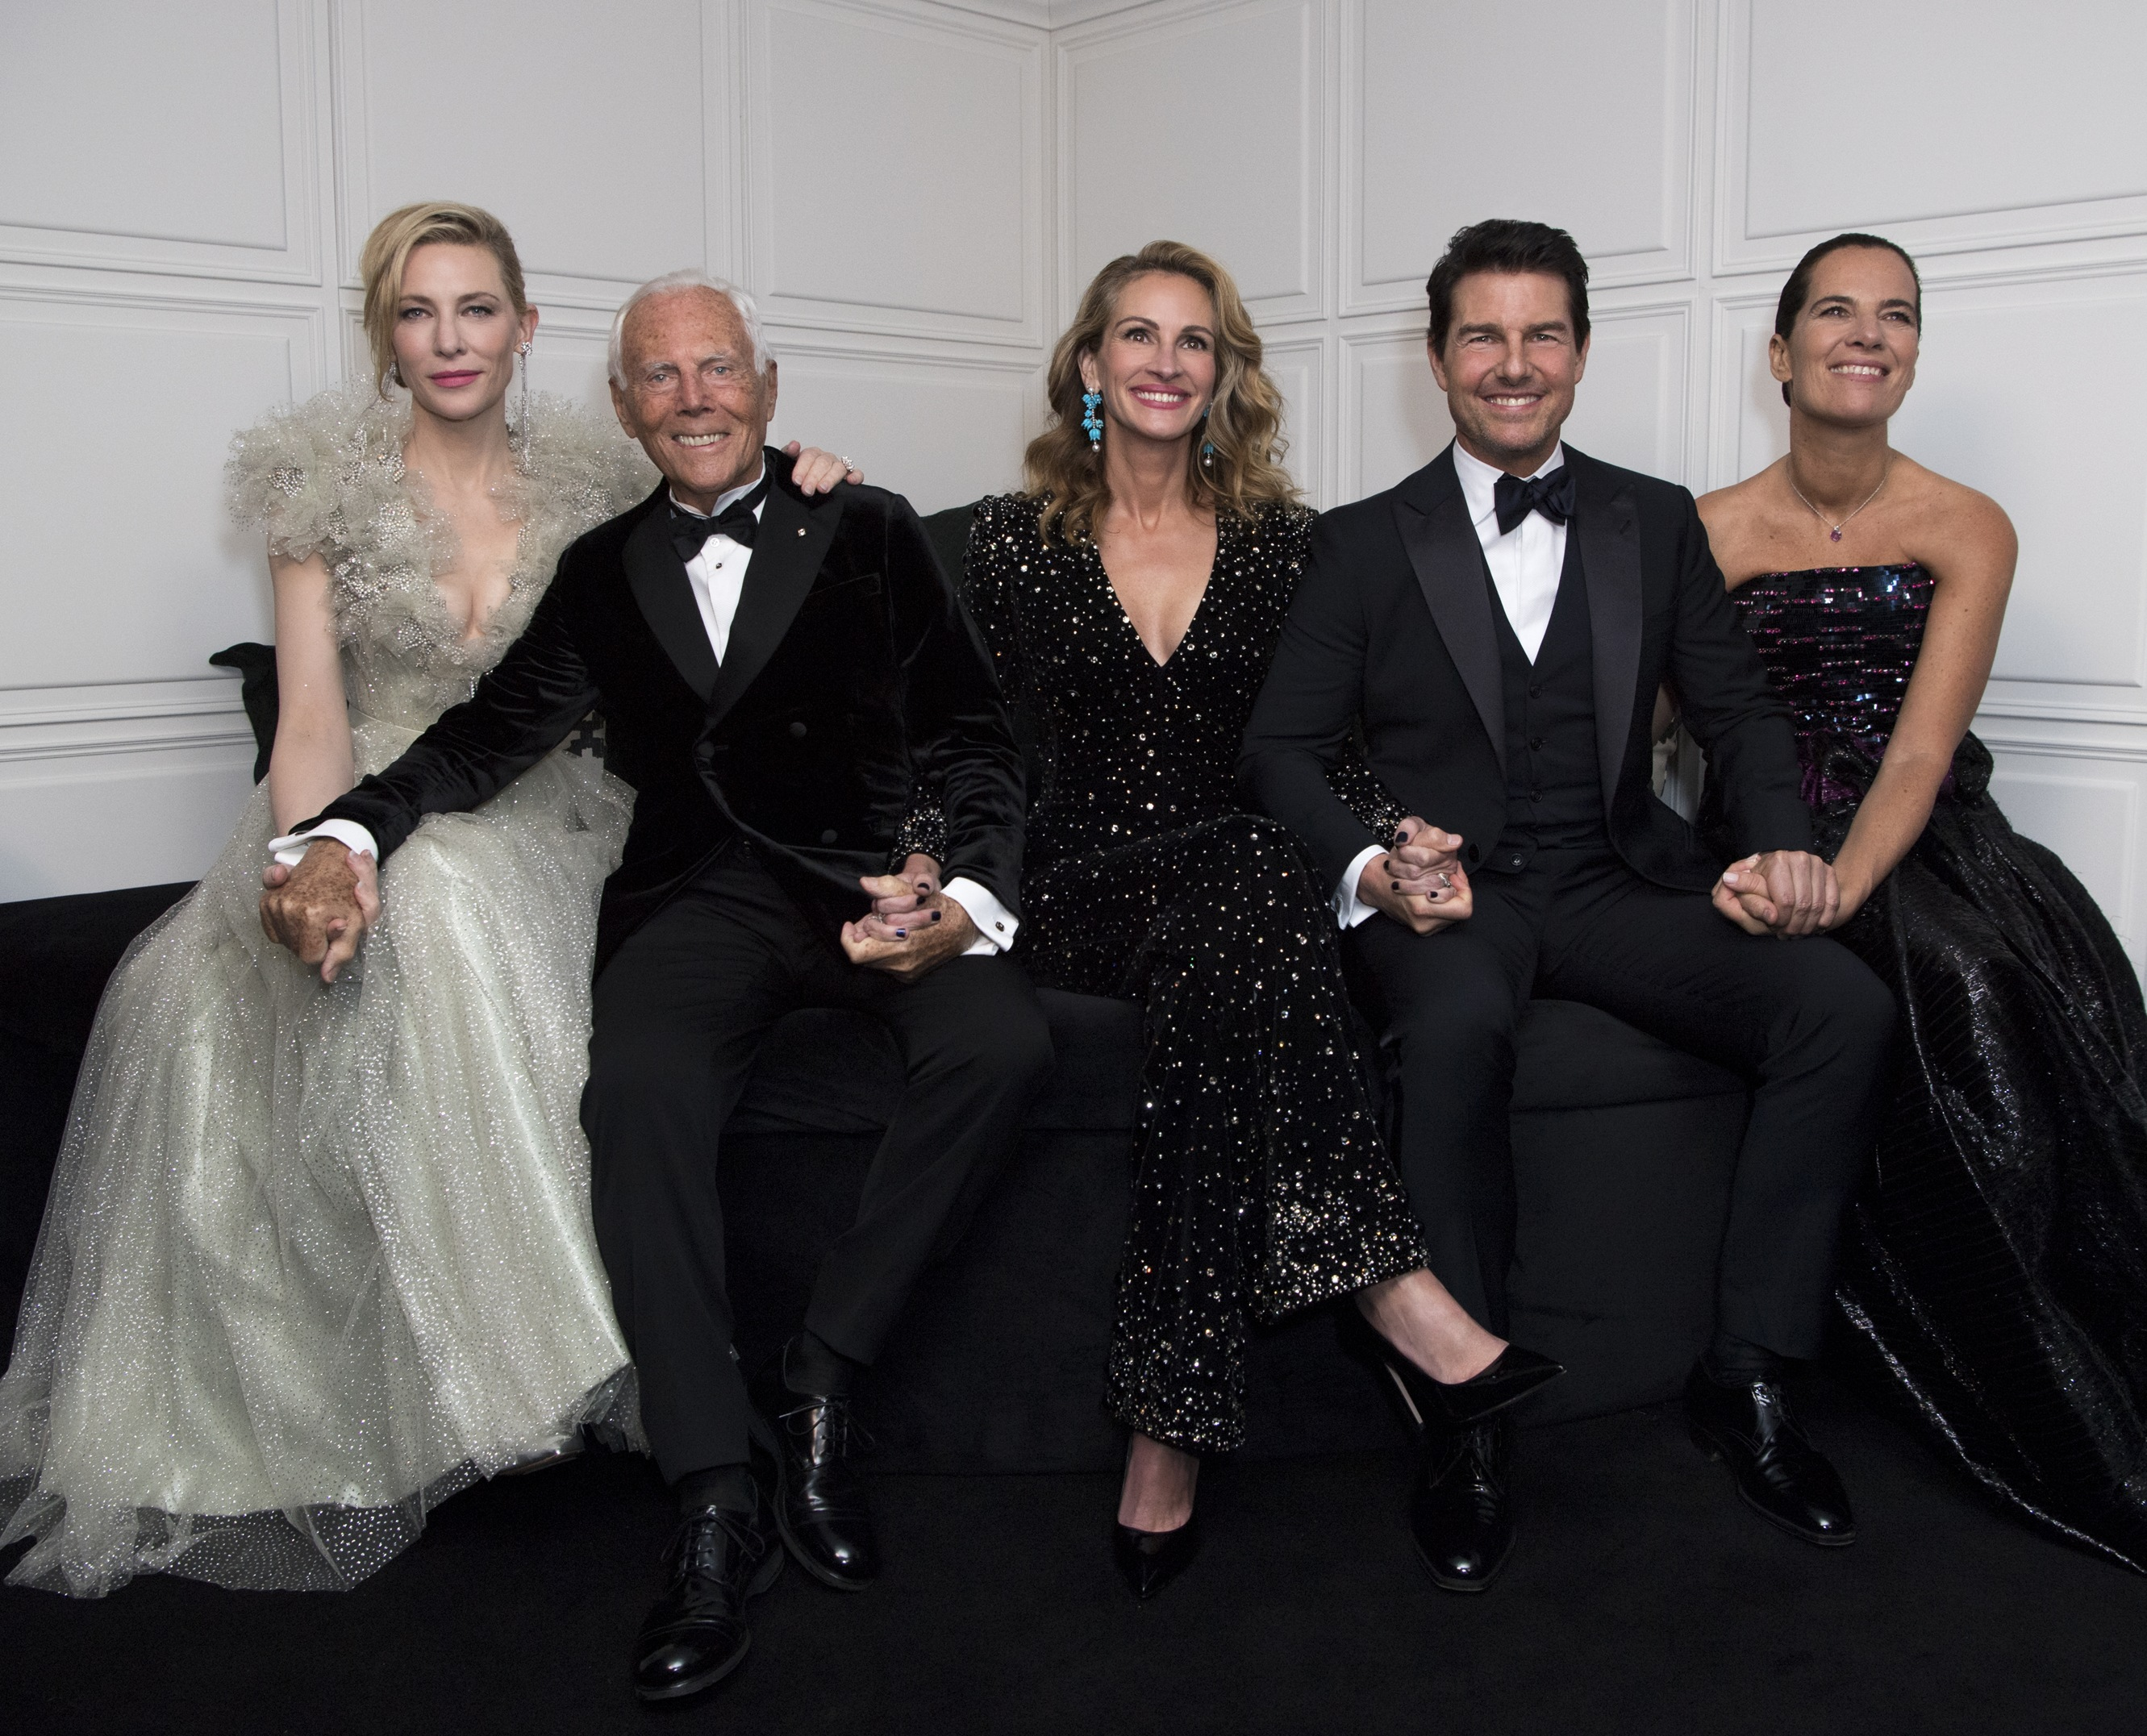 Giorgio Armani with Roberta Armani, Julia Roberts, Cate Blanchett and Tom Cruise - Photo by Stefano Guindani